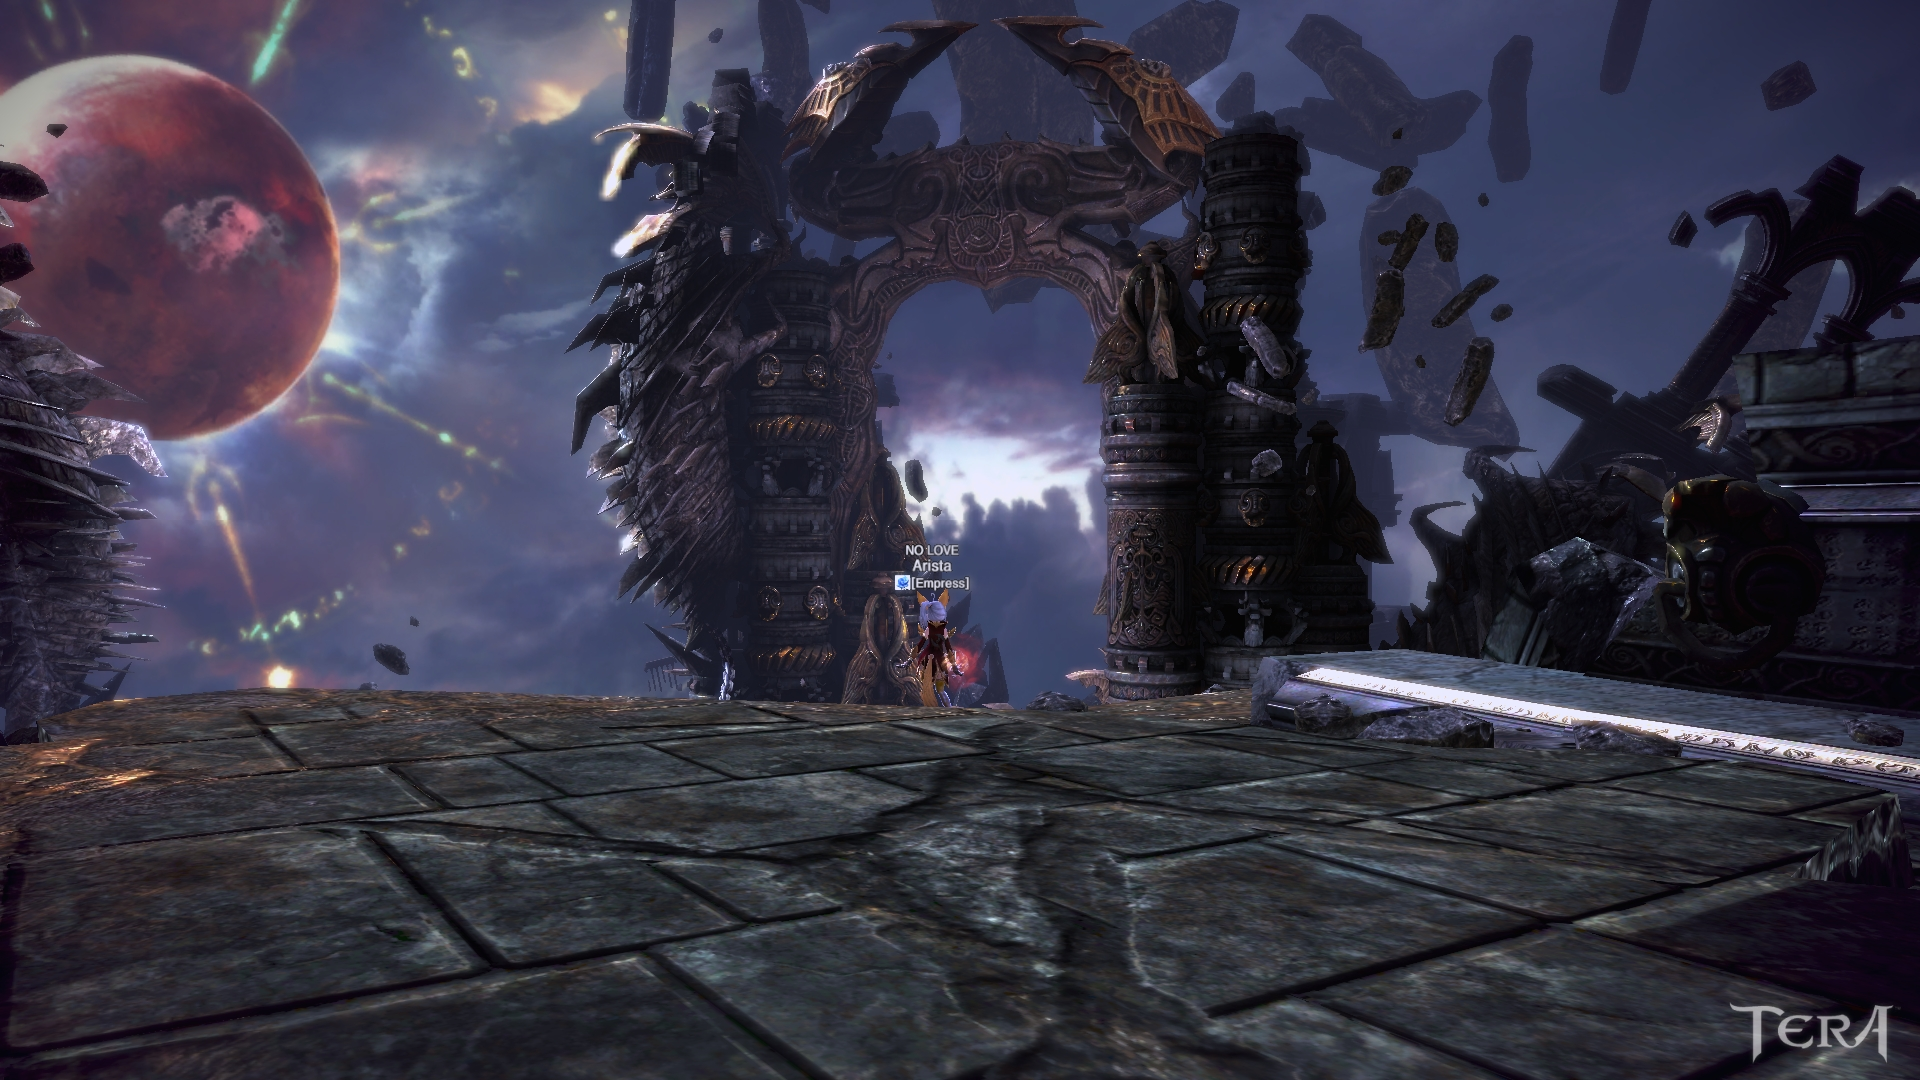 cloudius games opening gameplay trailer experience preview online media removed heres tera